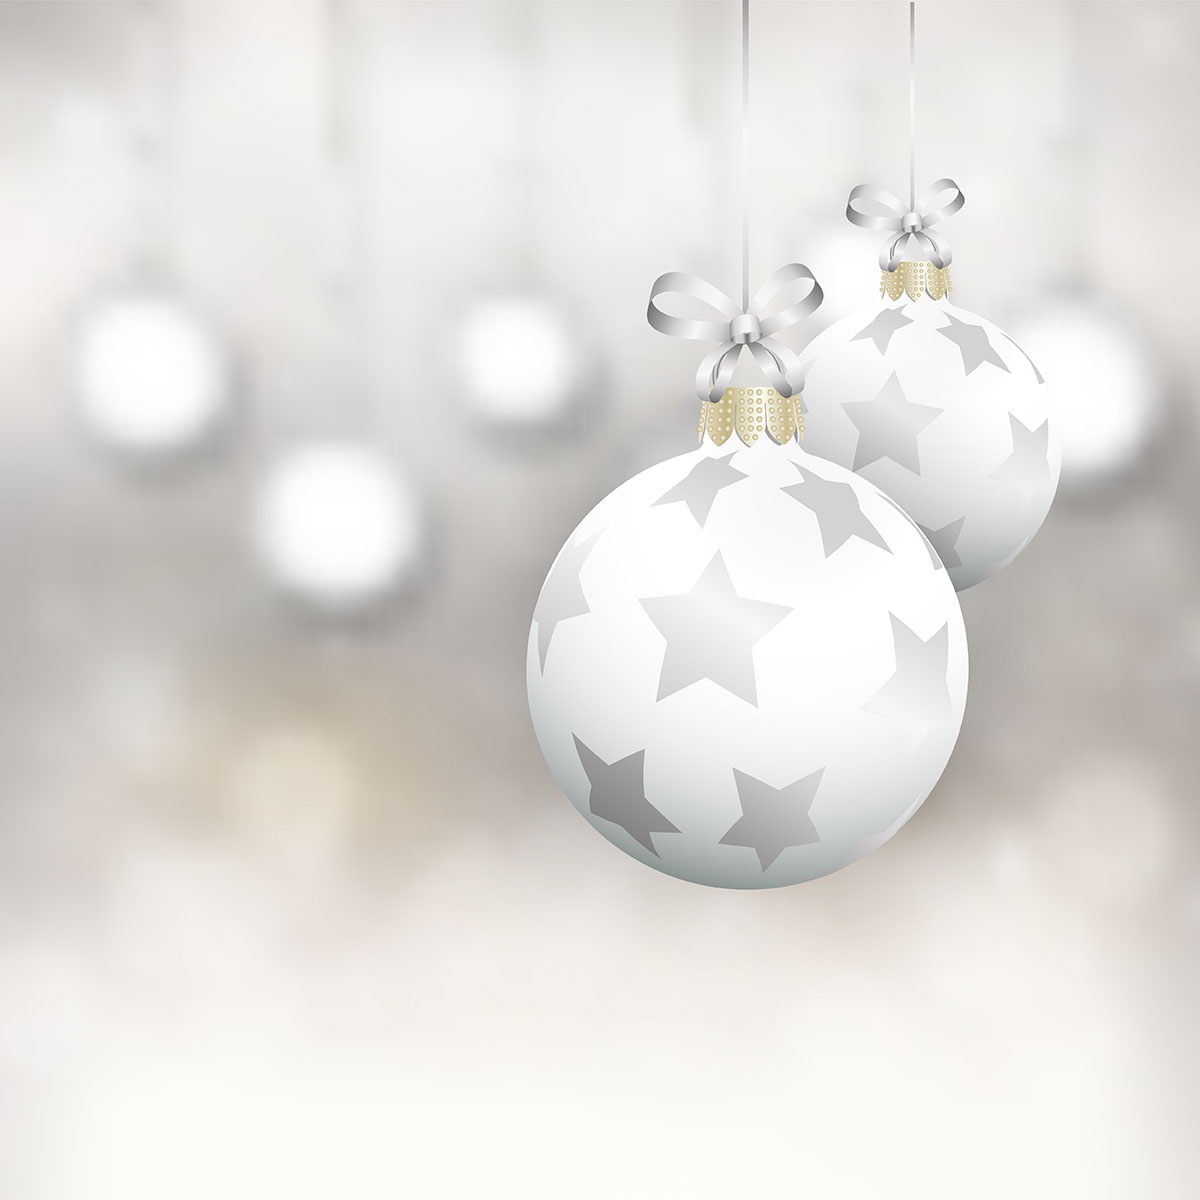 Christmas baubles background - Download Free Vectors ...